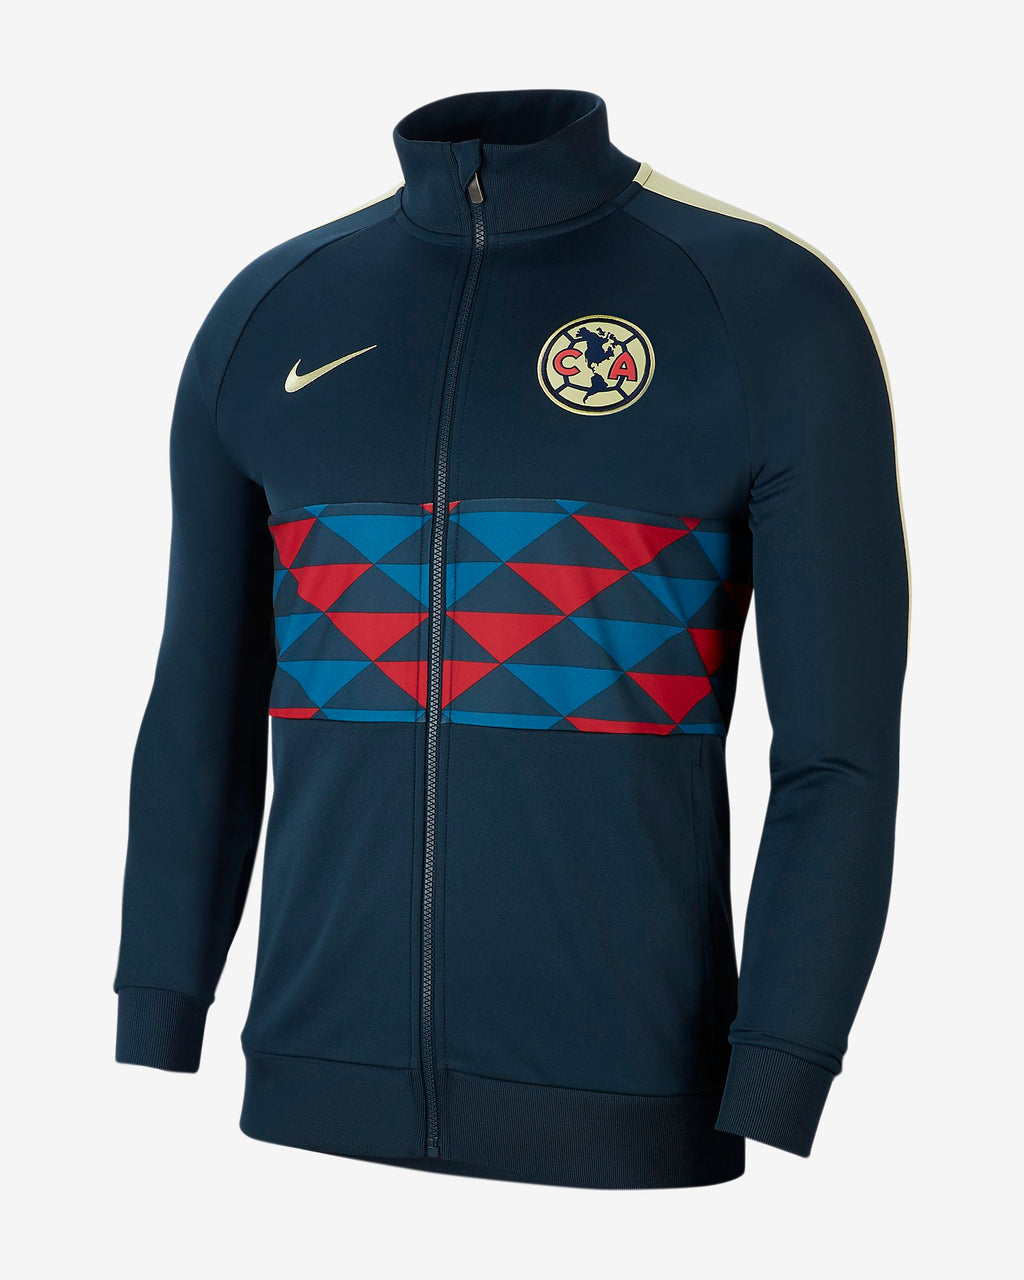 Nike Club America Men's Jacket